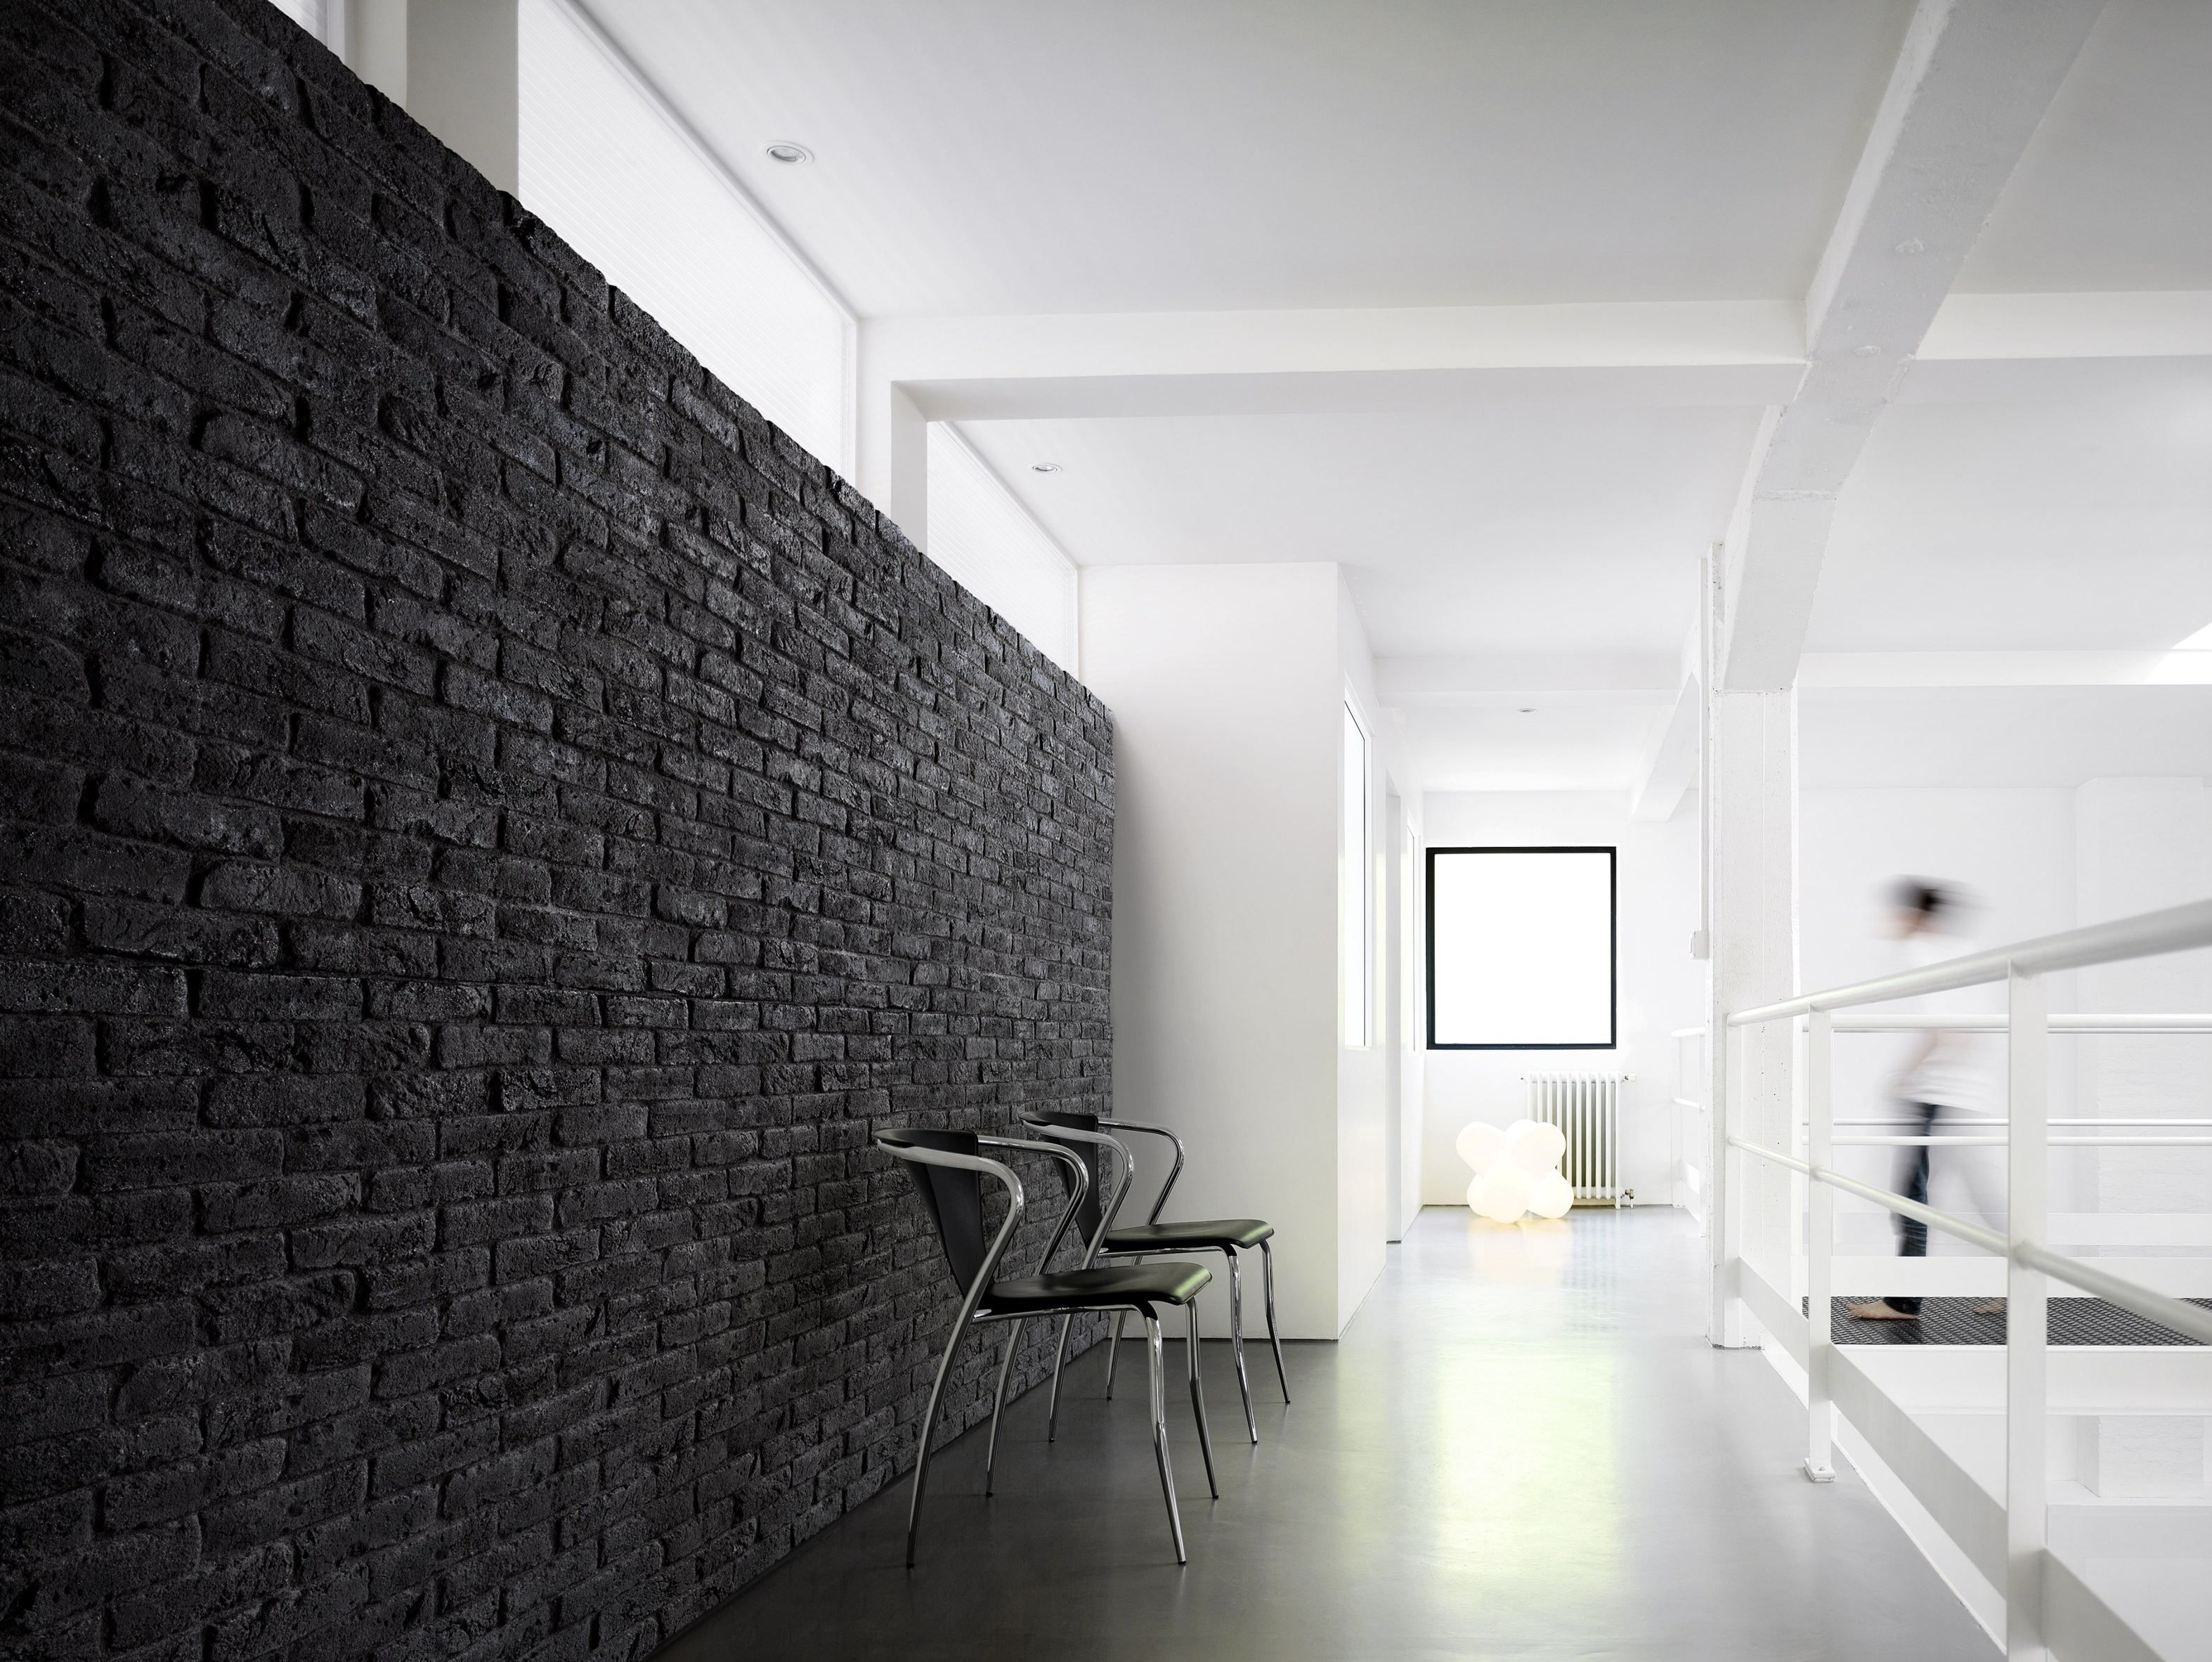 Reconstructed Stone Wall Tiles Brique Black White By Orsol